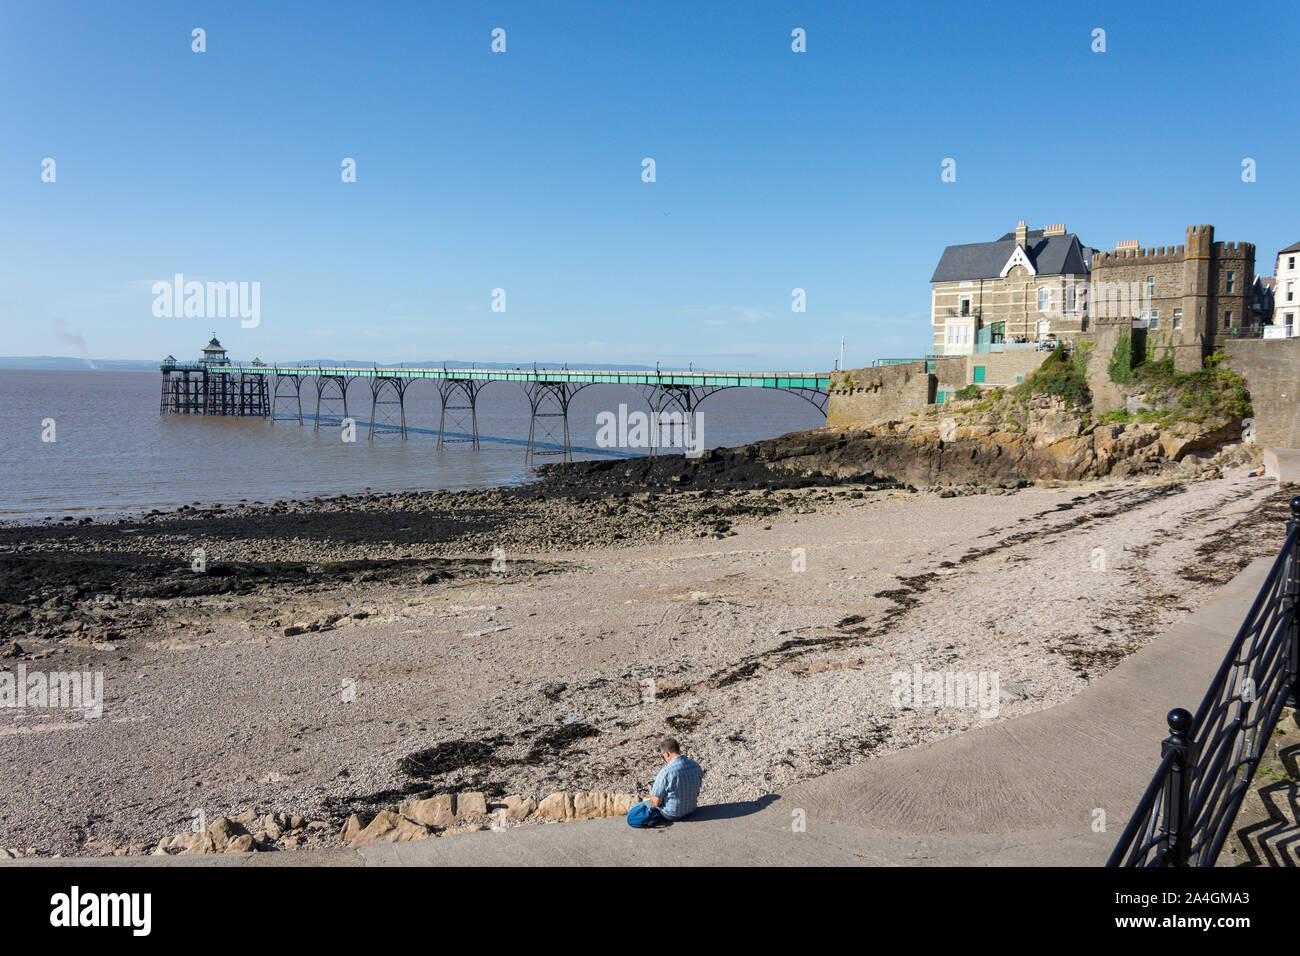 Clevedon Beach and Pier , Clevedon, Somerset, England, United Kingdom Stock Photo